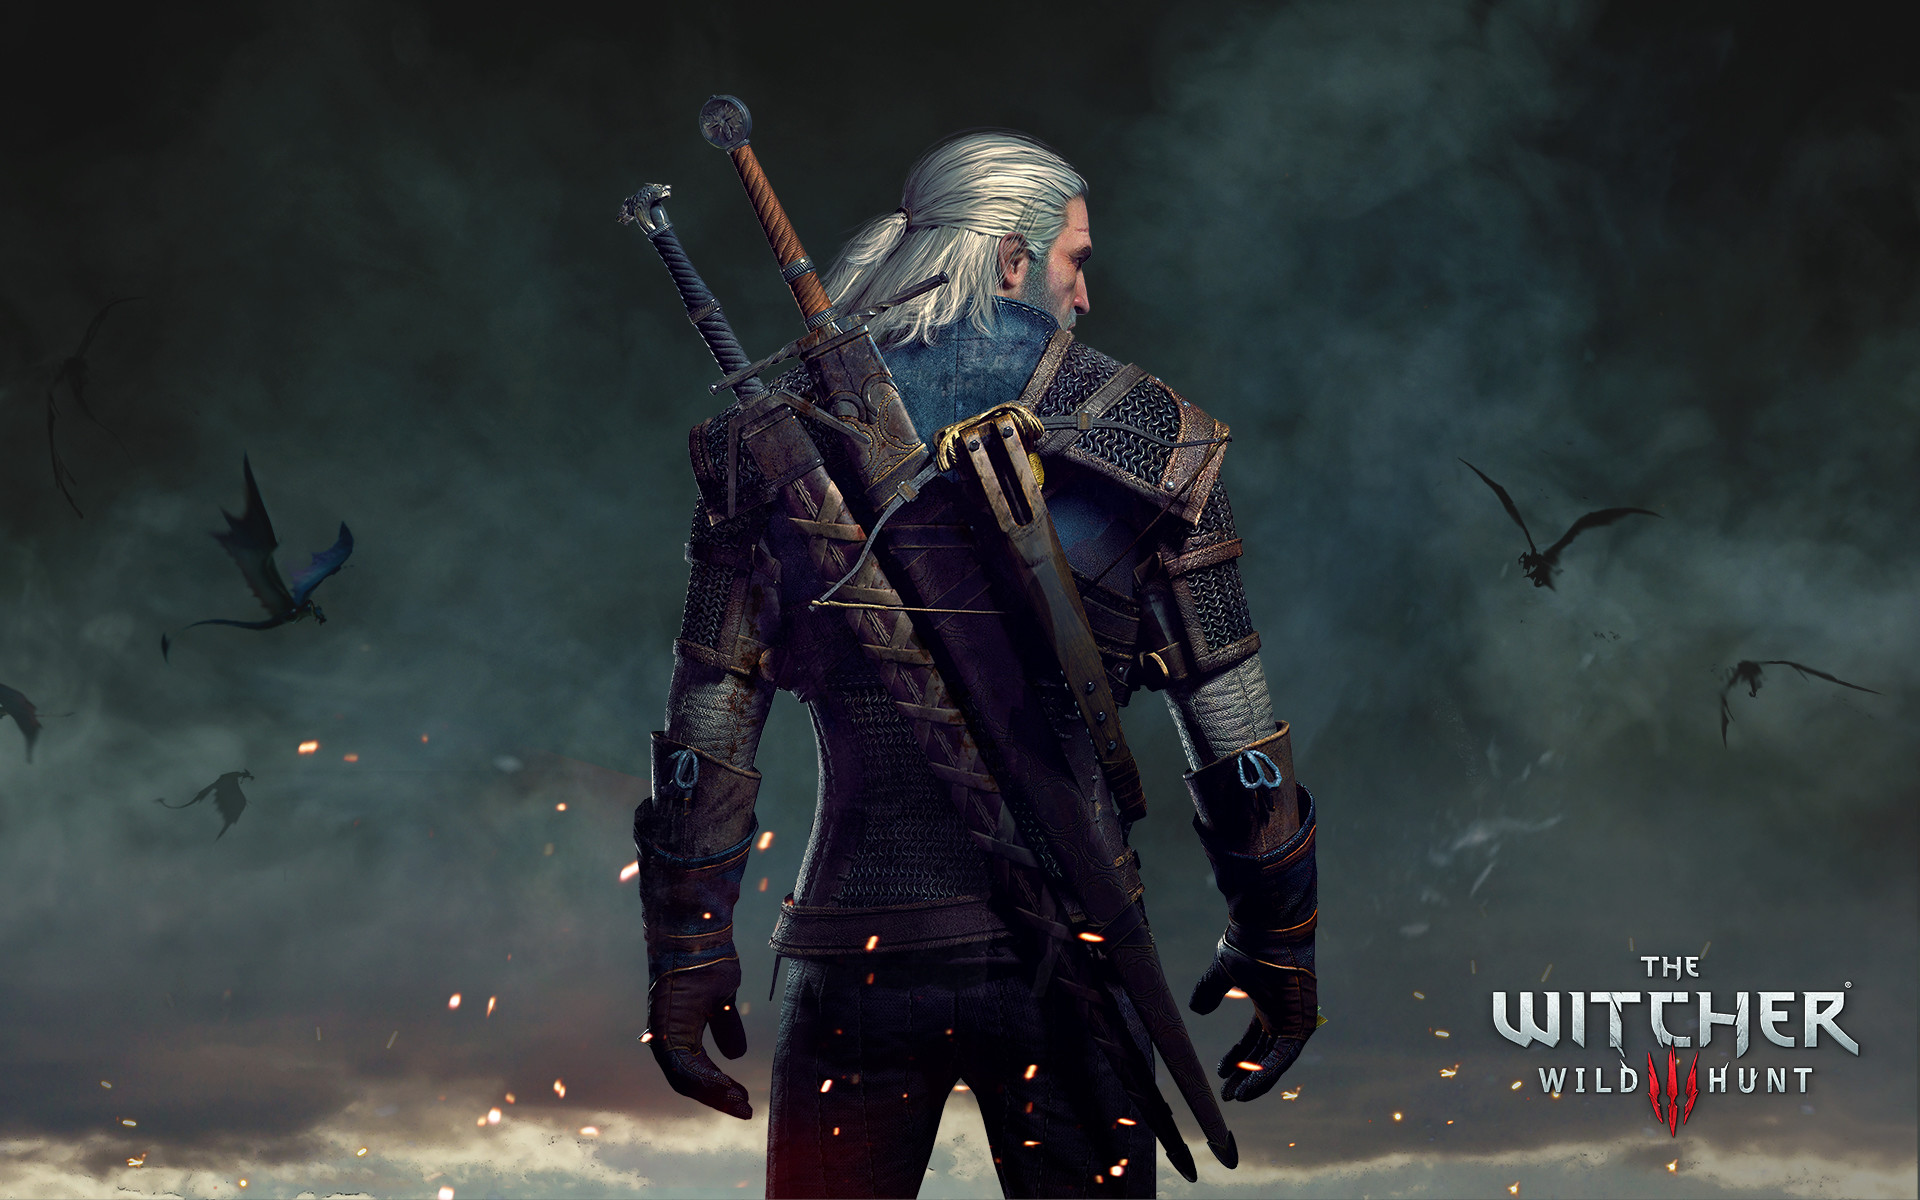 Wide HDQ The Witcher 3 Wallpapers (The Witcher 3 Wallpaper, 29 .